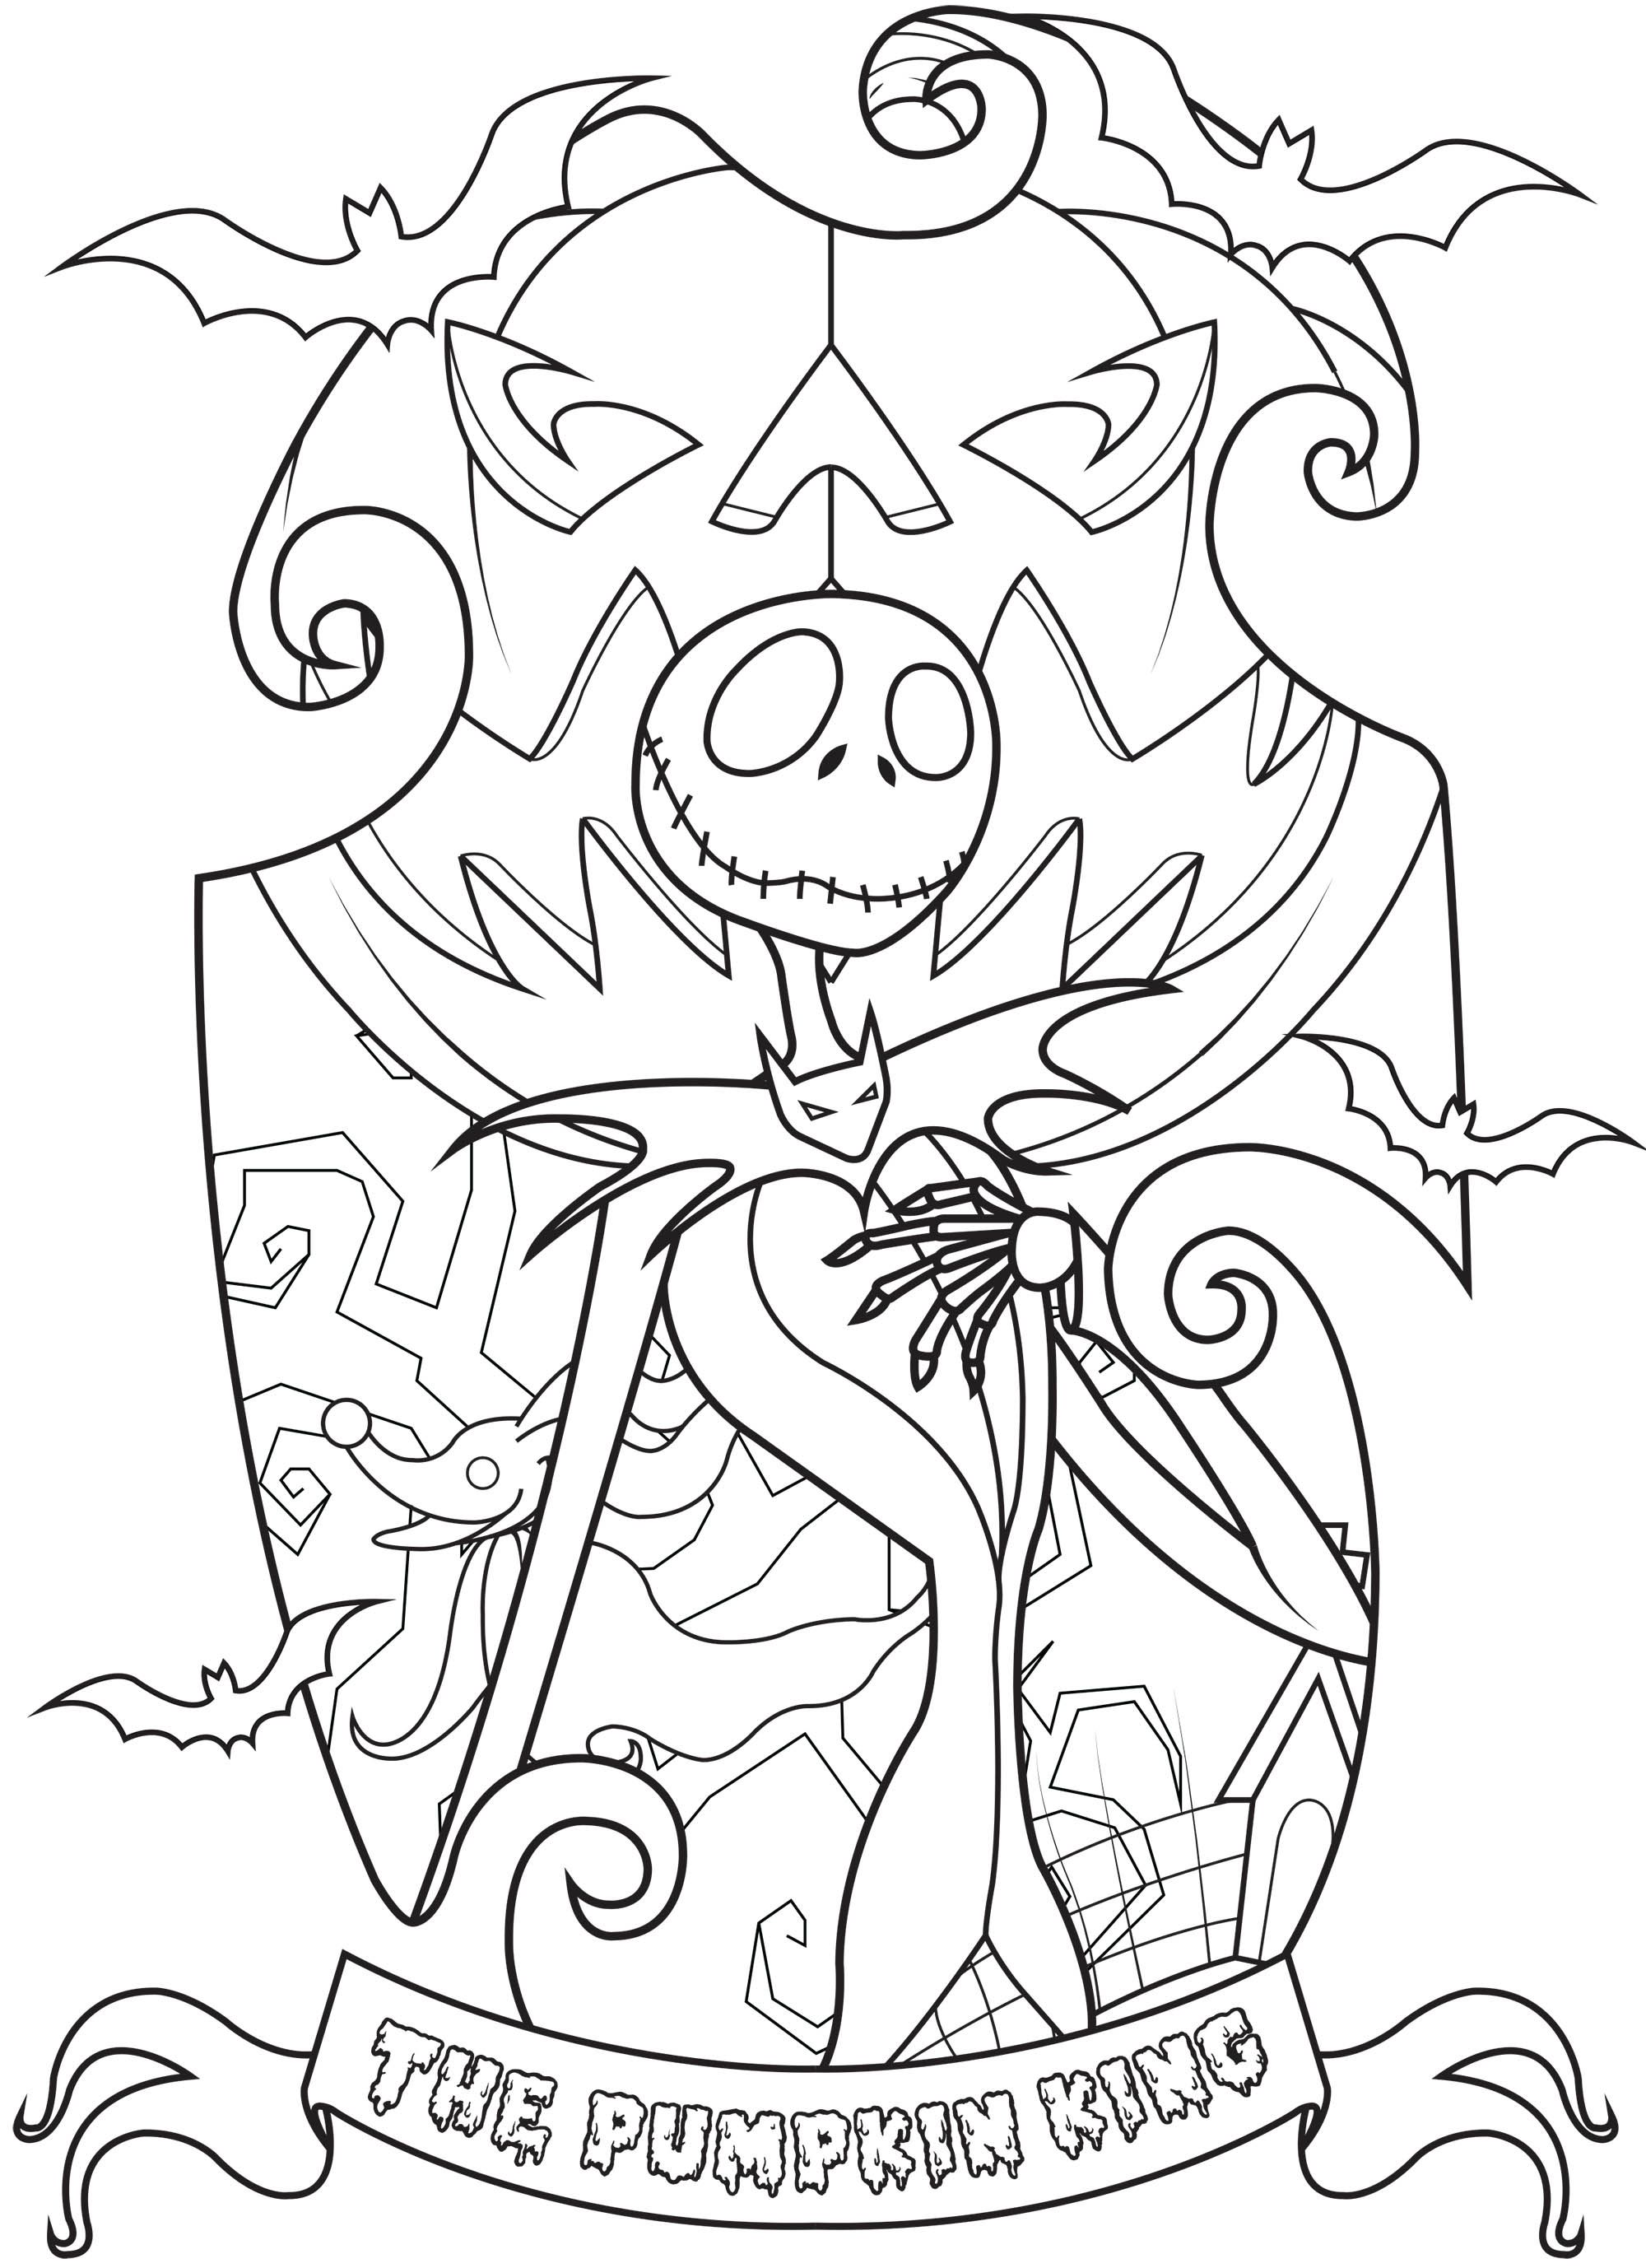 Color Jack Skellington, King of Halloween Town. He's a character and the main pr...